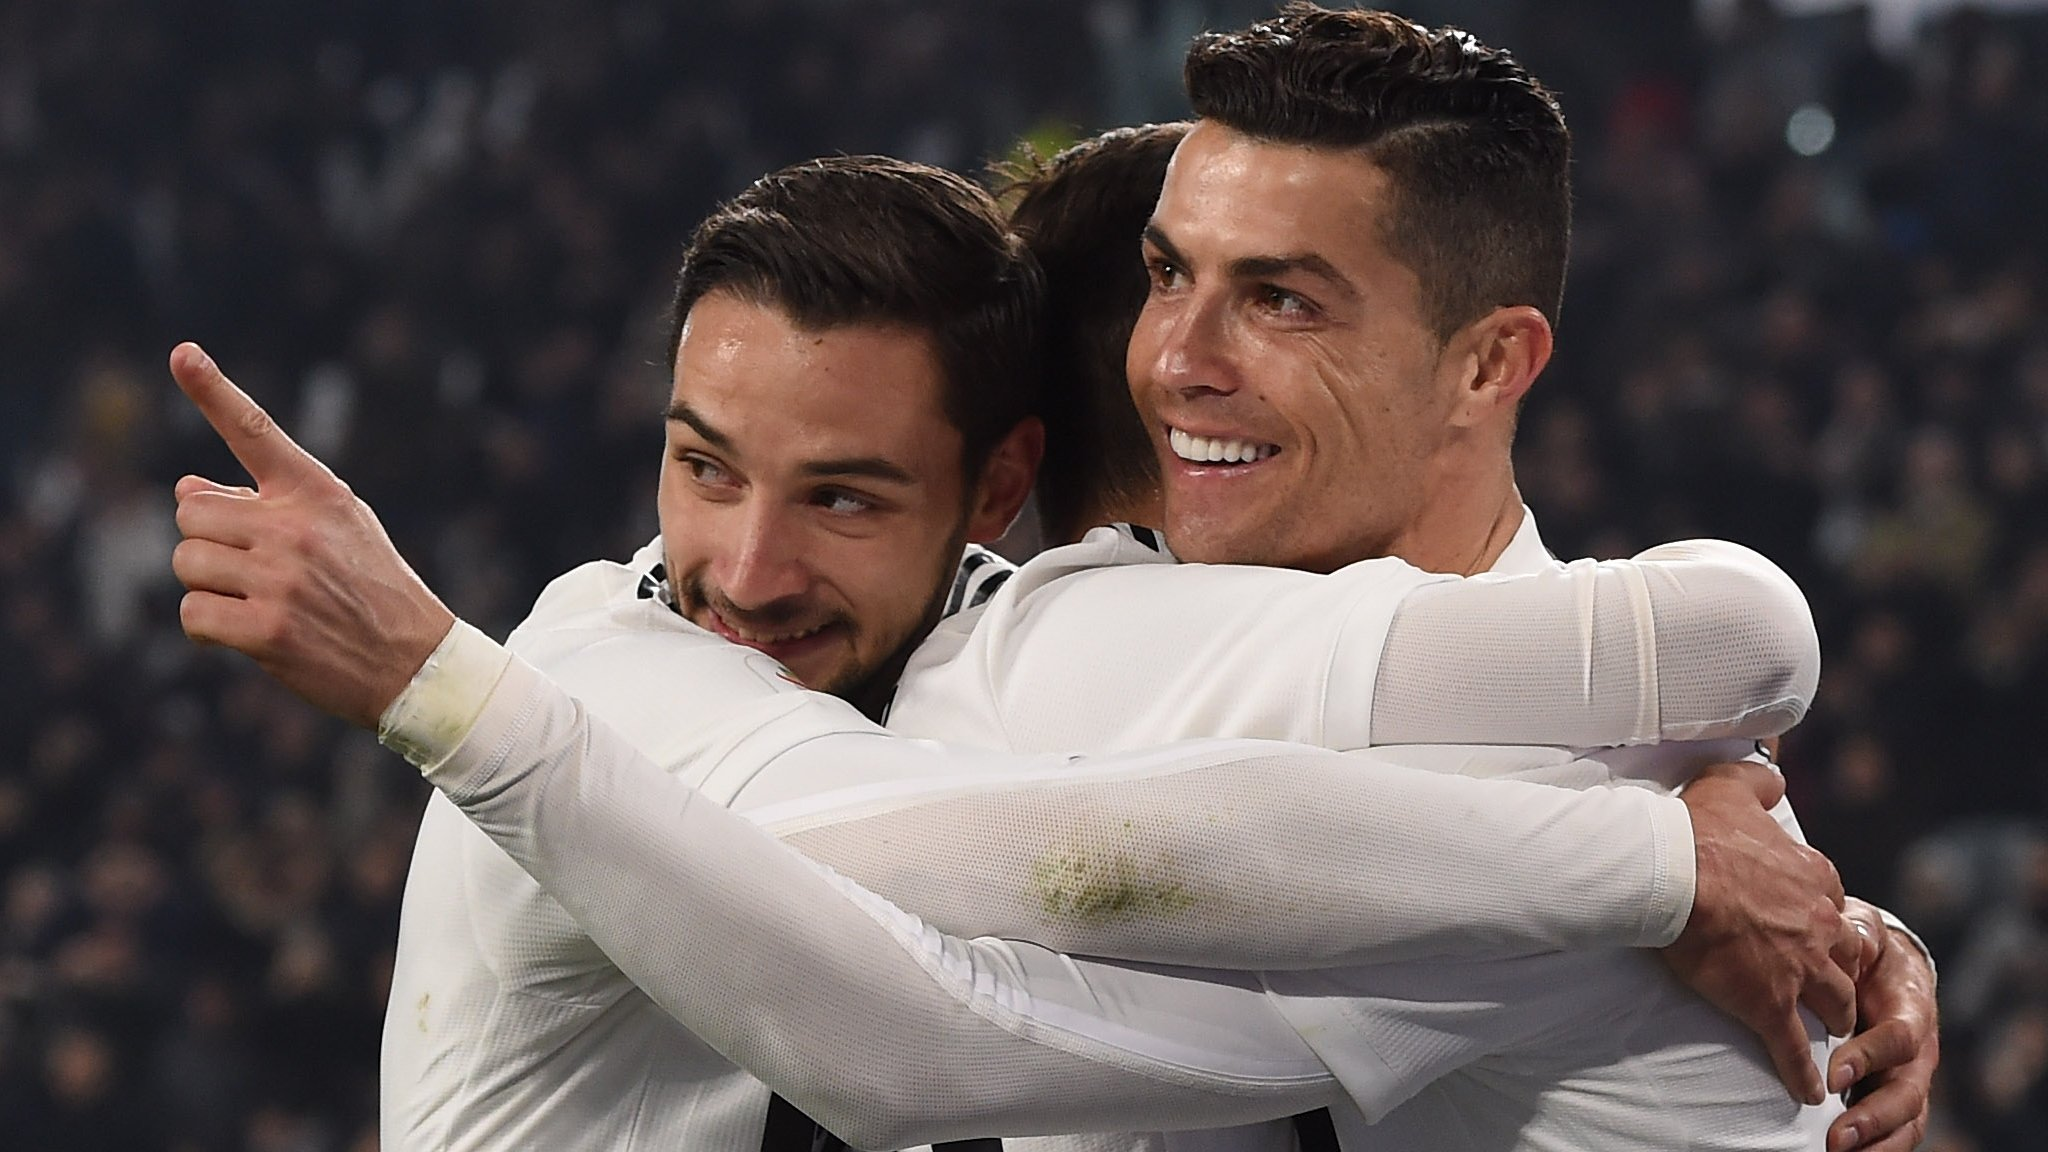 Juventus 3-0 Frosinone: Cristiano Ronaldo scores as Juve go 14 points clear